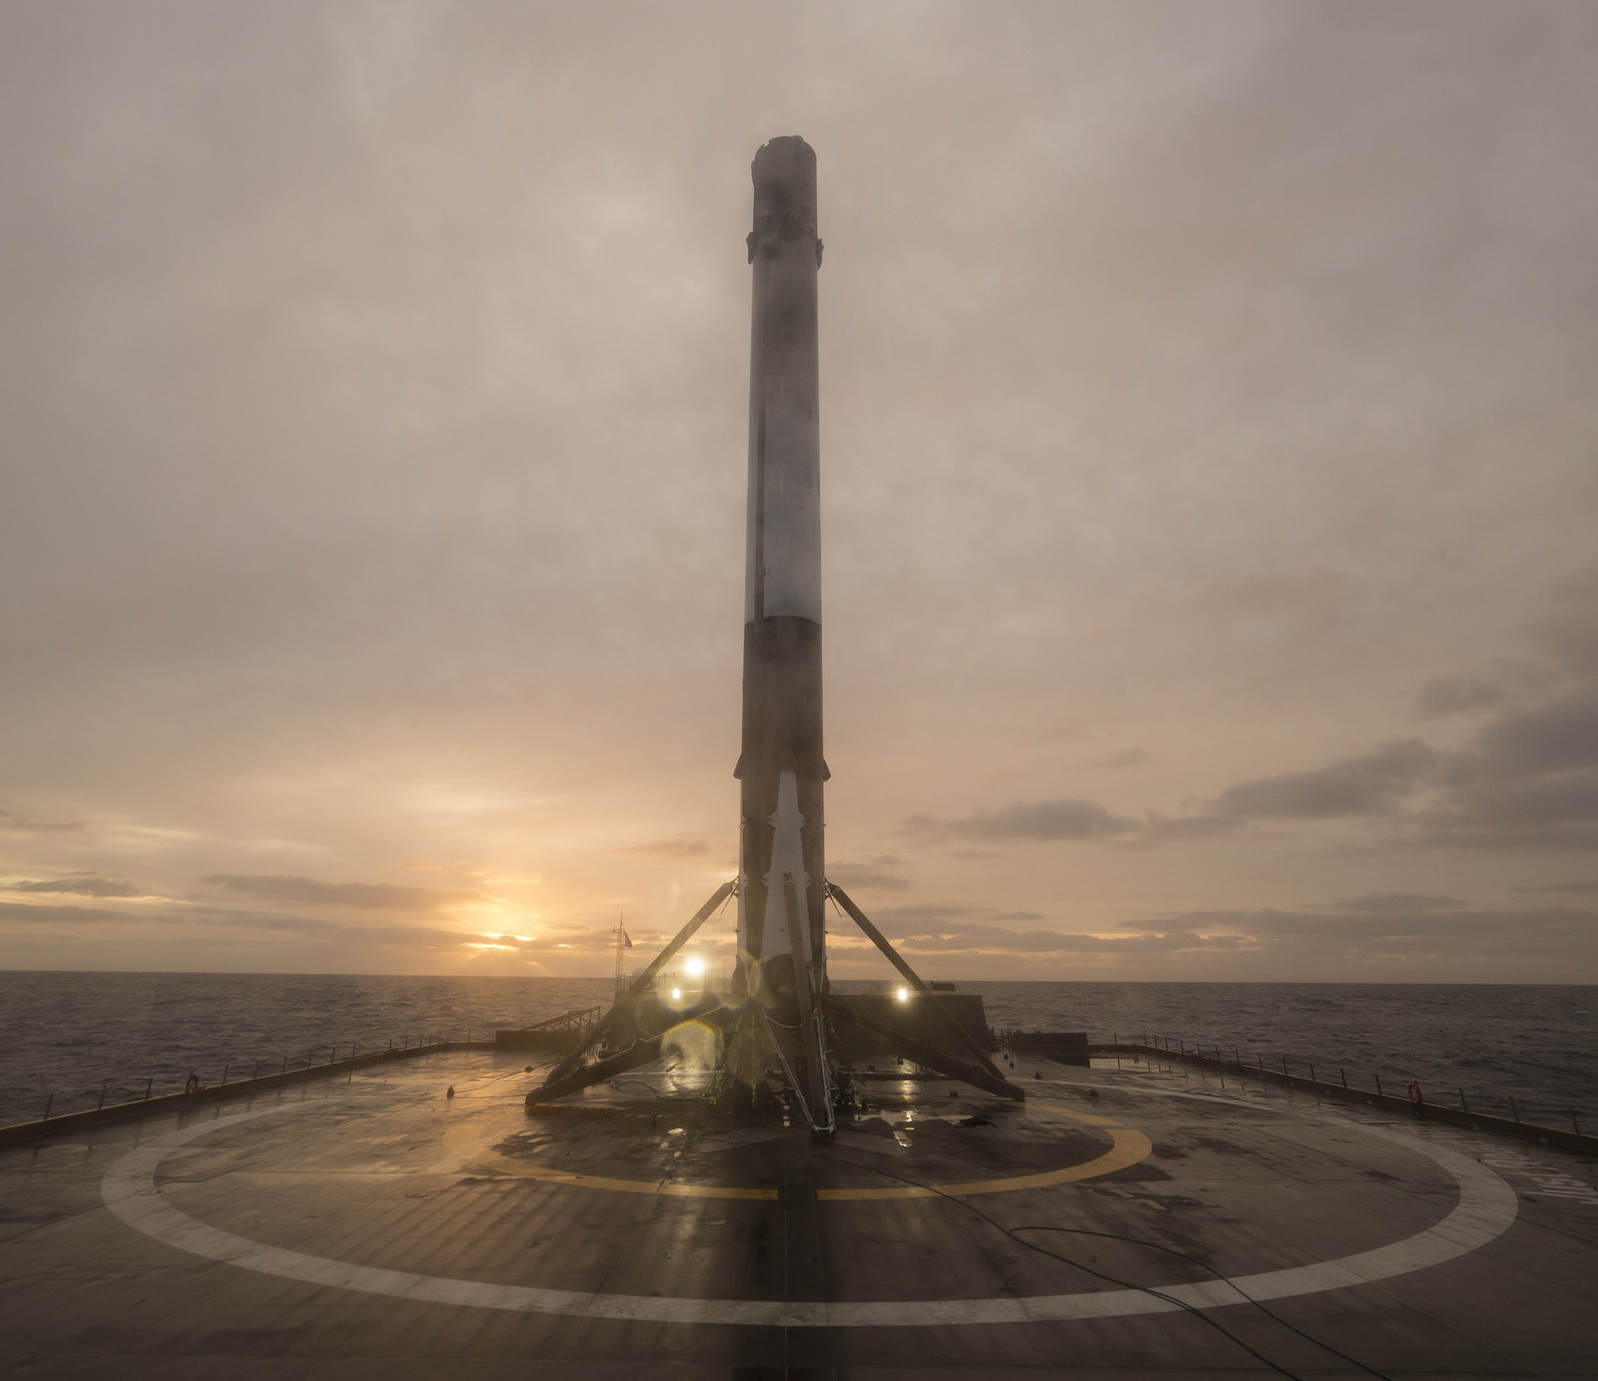 SpaceX-Falcon9-droneship-sunset